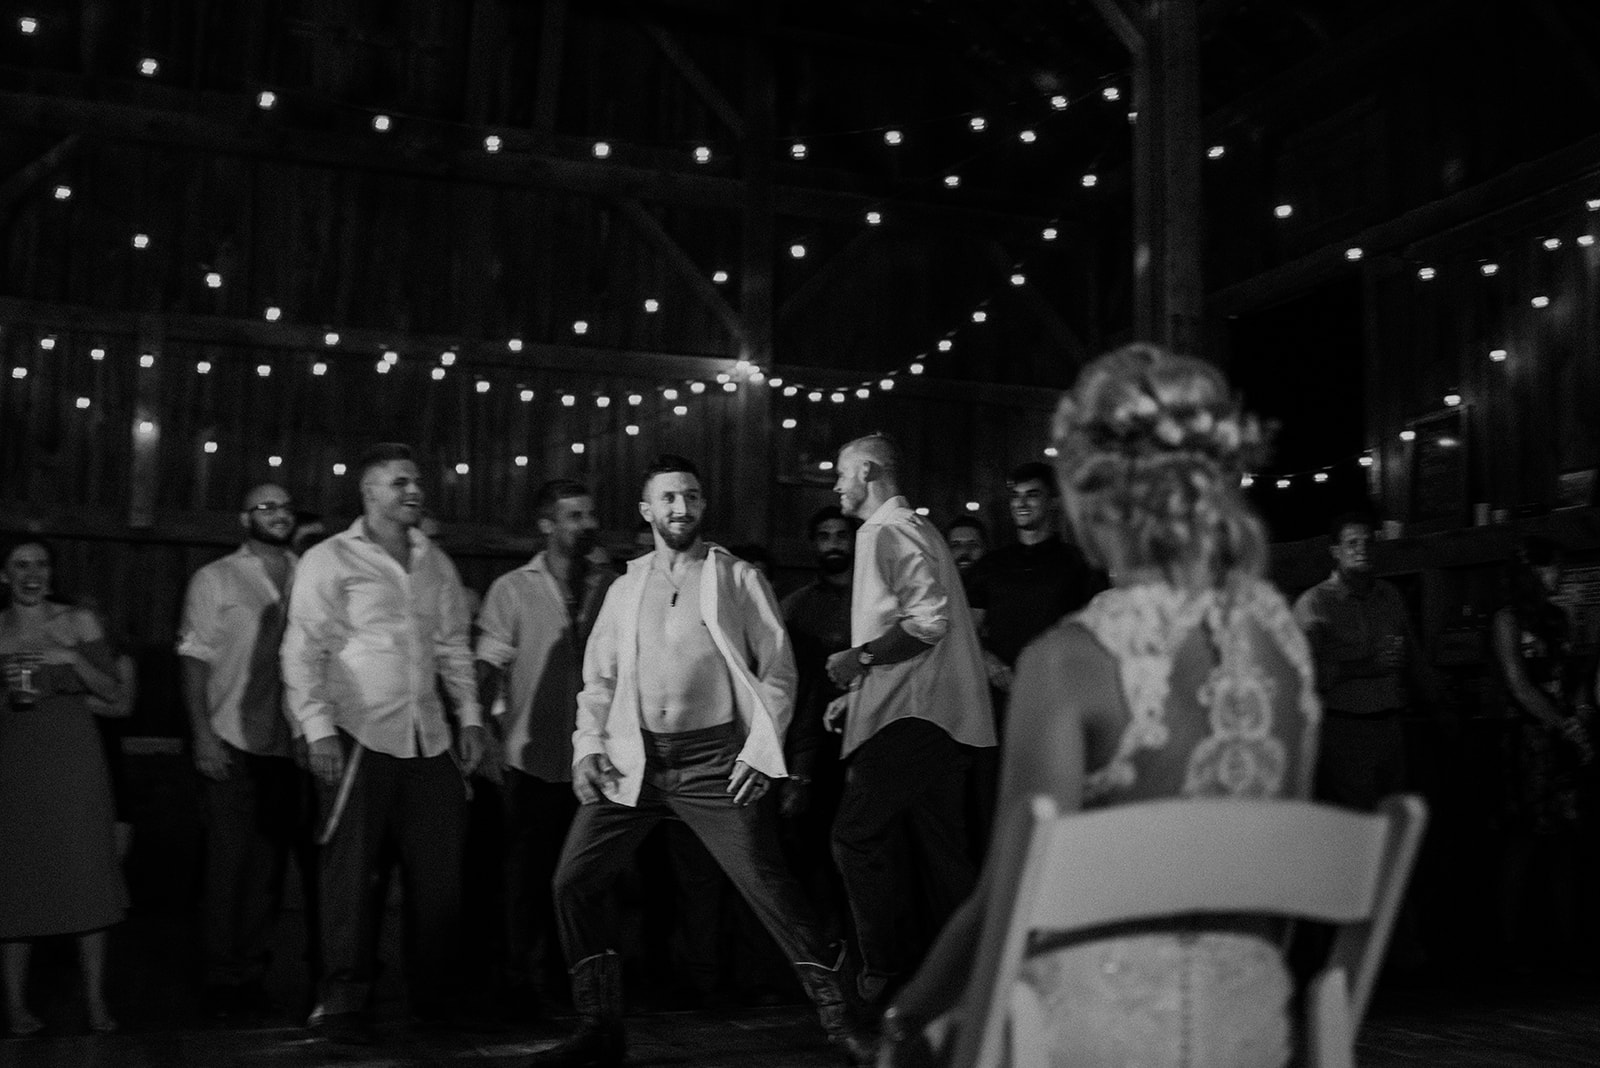 overthevineswisconsinwedding_1499.jpg